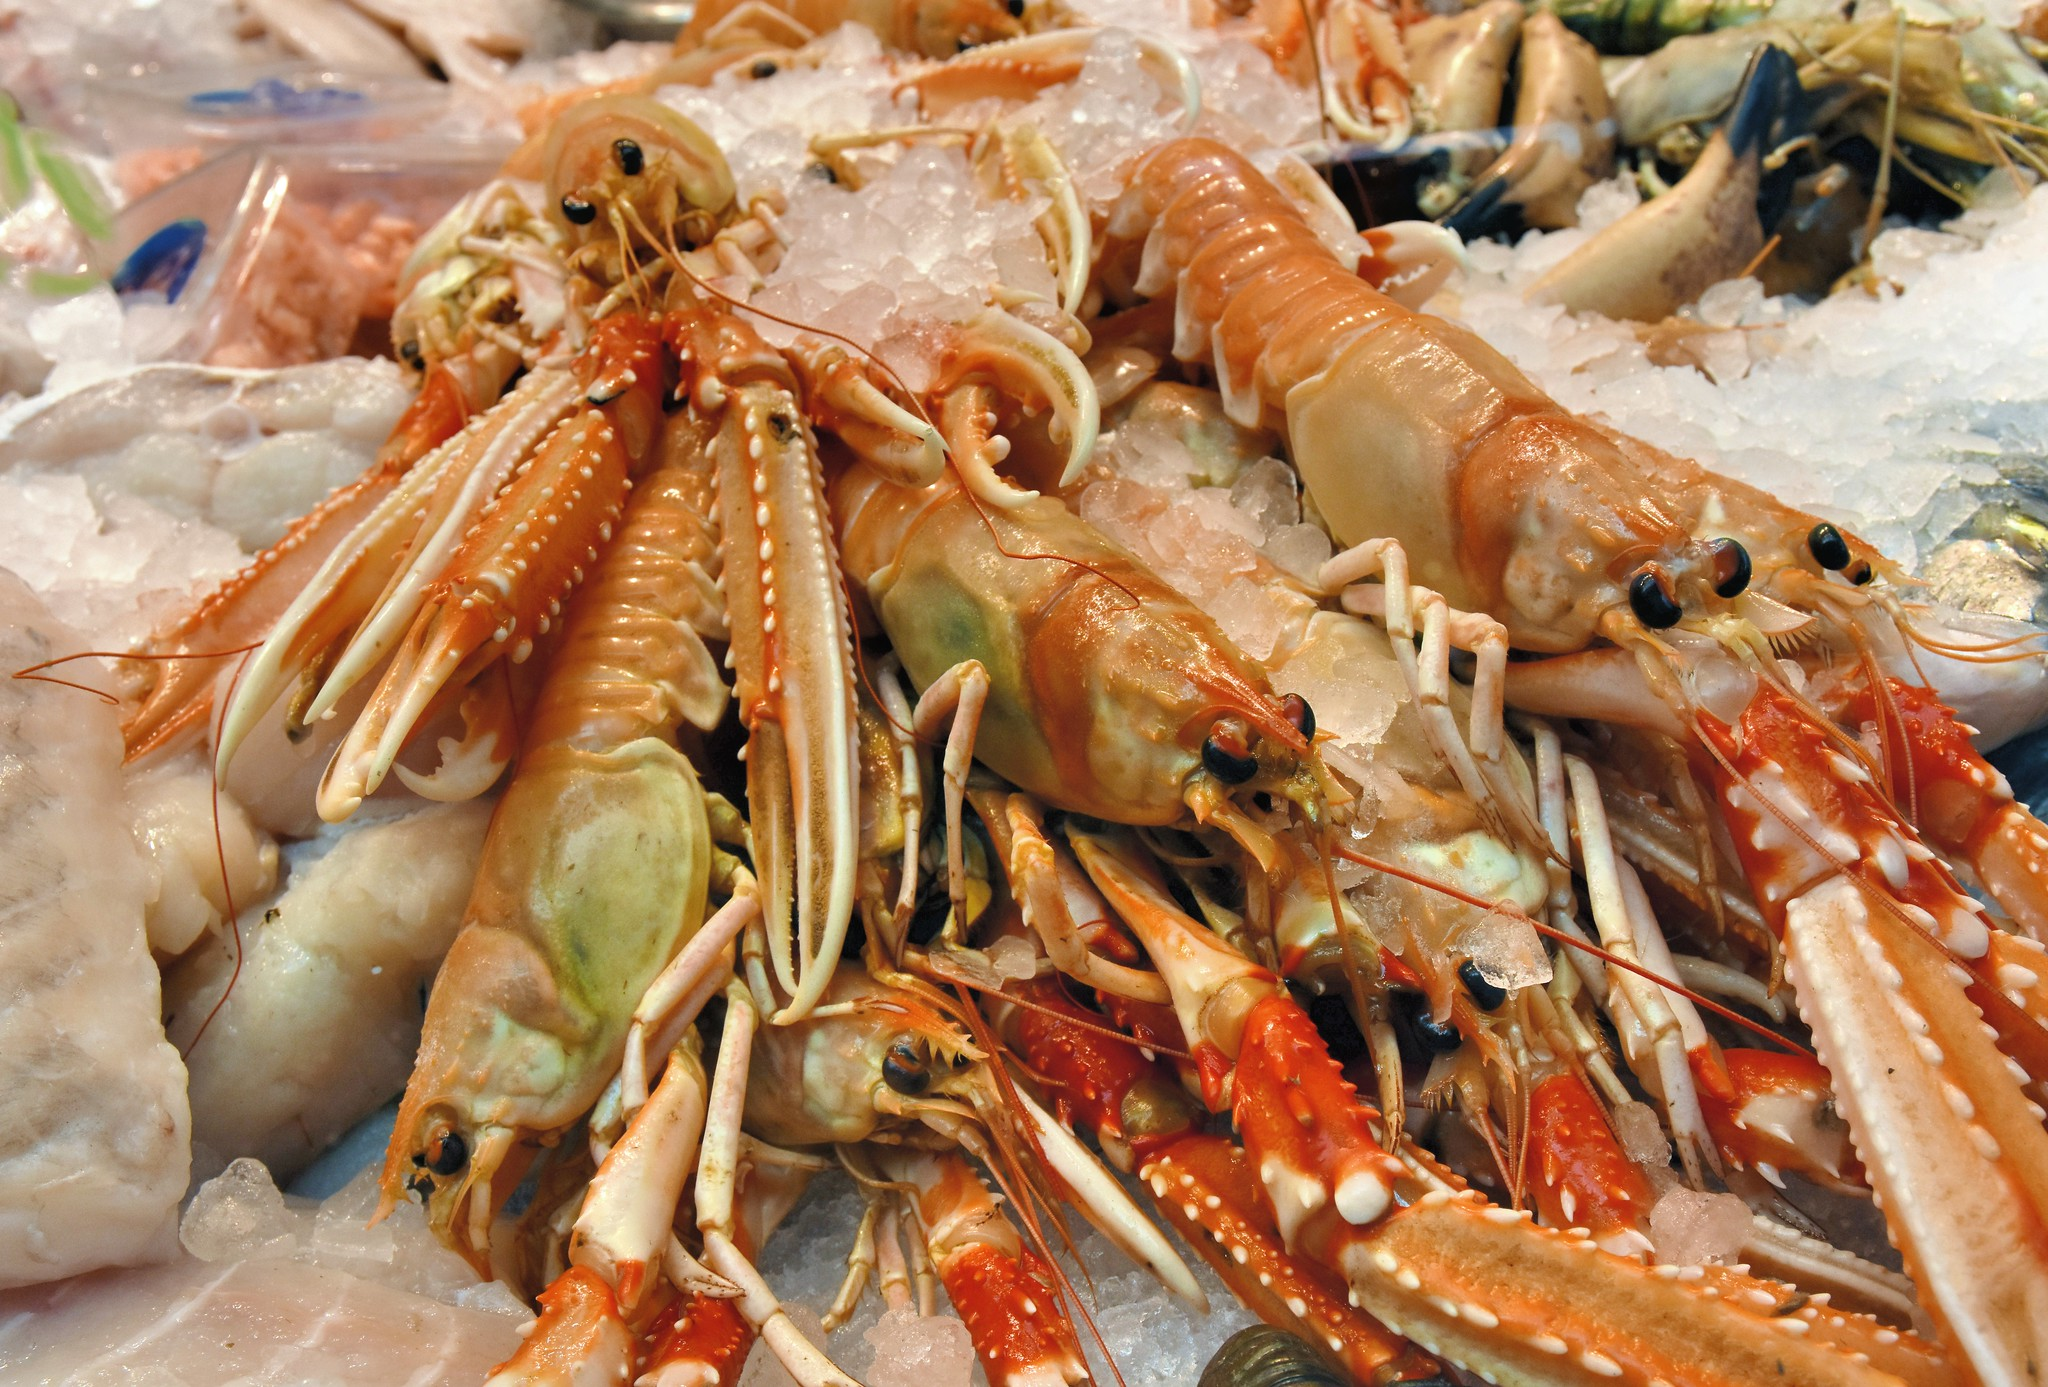 CuanTech turn the waste parts of langoustines into packaging